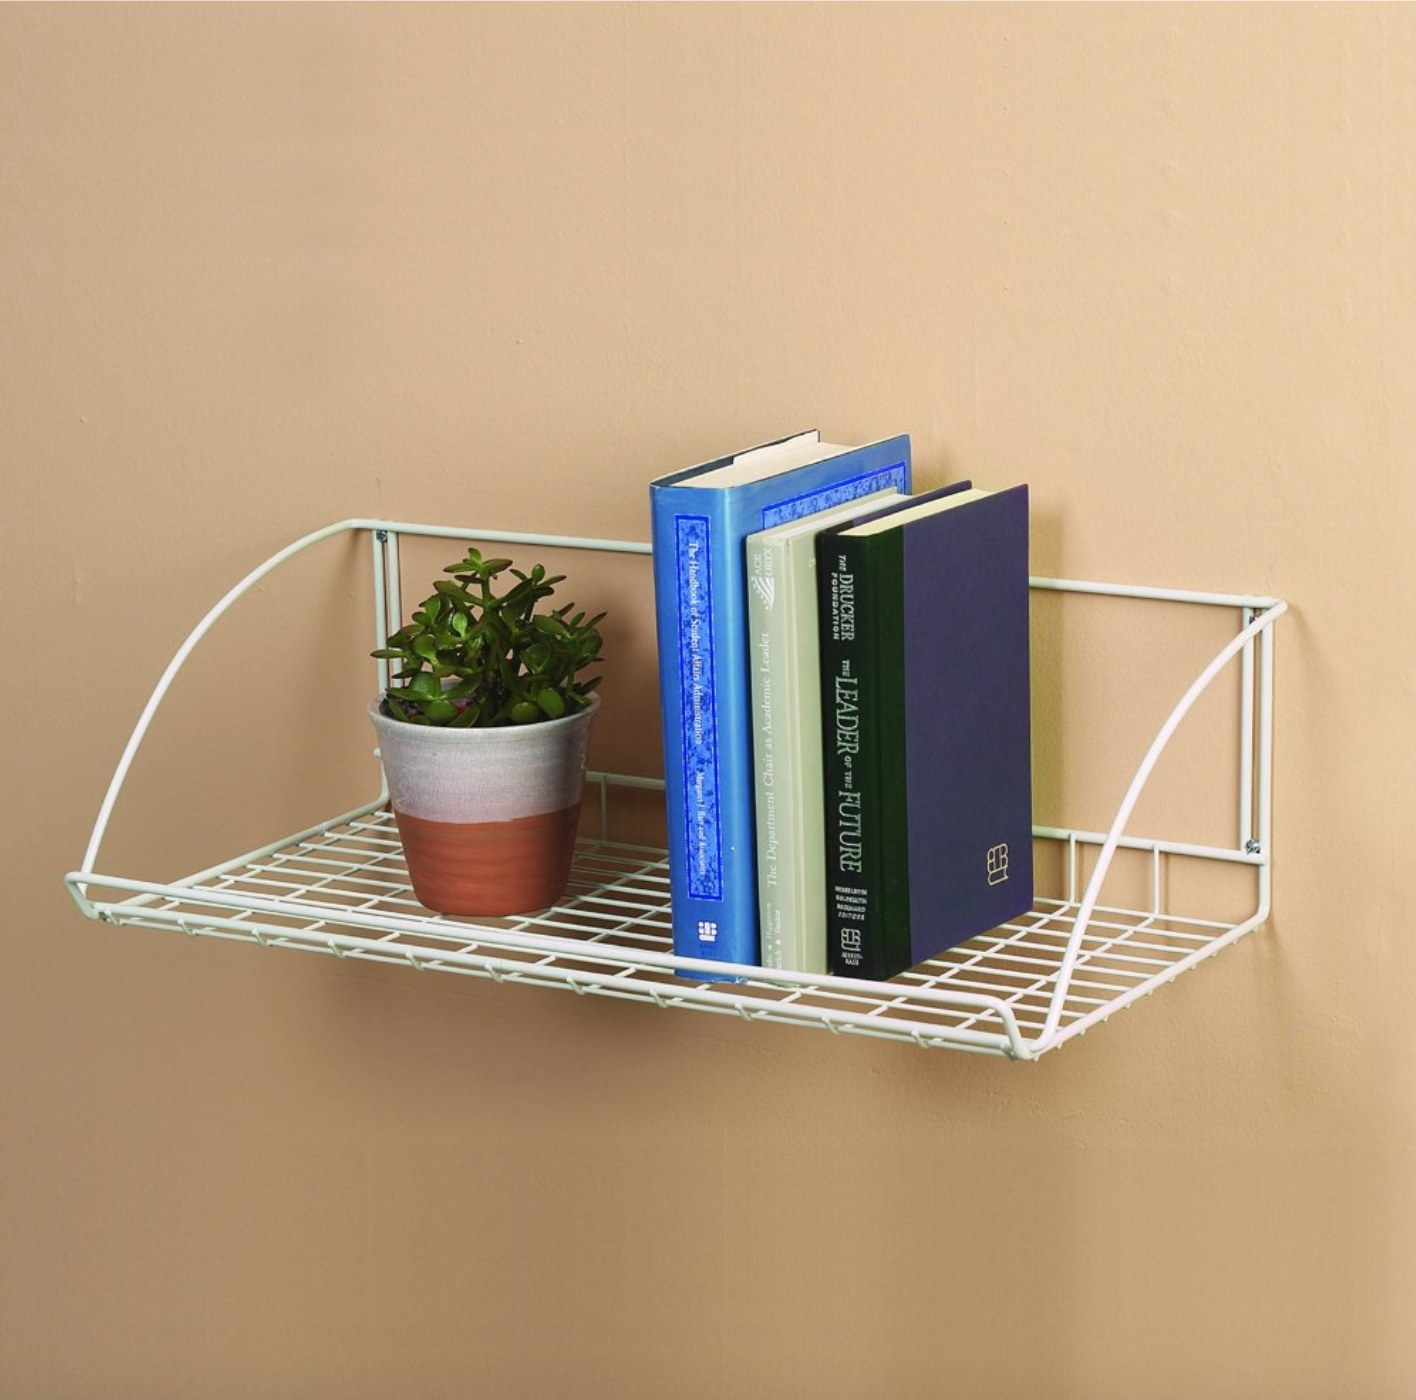 The shelf being used to hold books and a plant